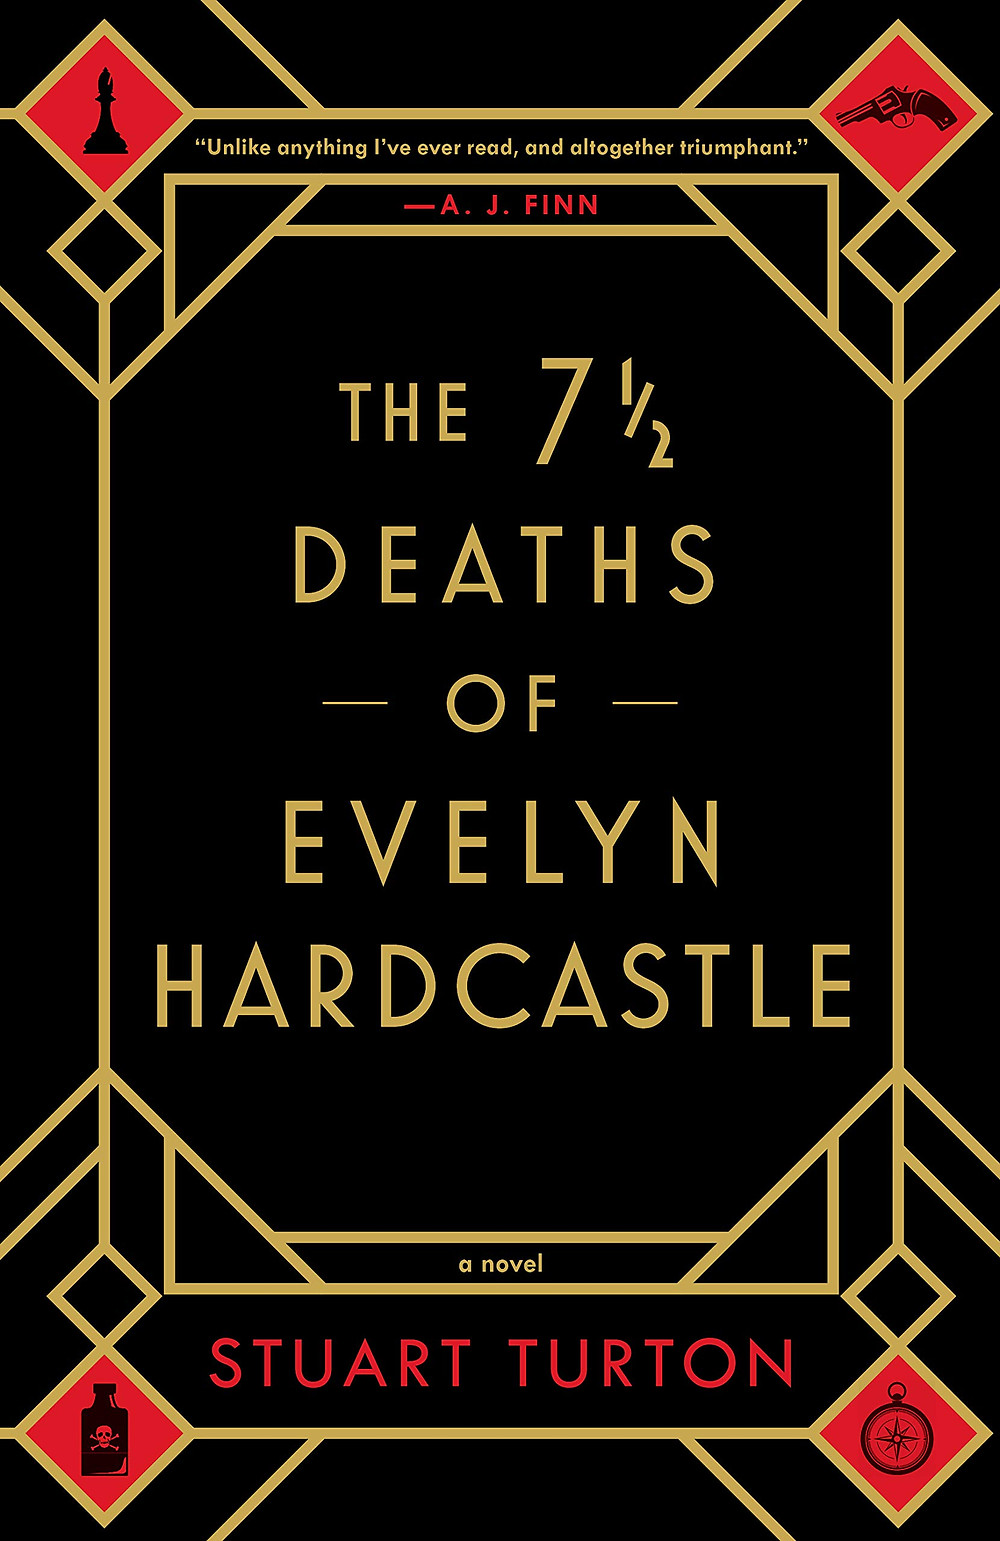 Book cover of The 7 1/2 Deaths of Evelyn Hardcastle.